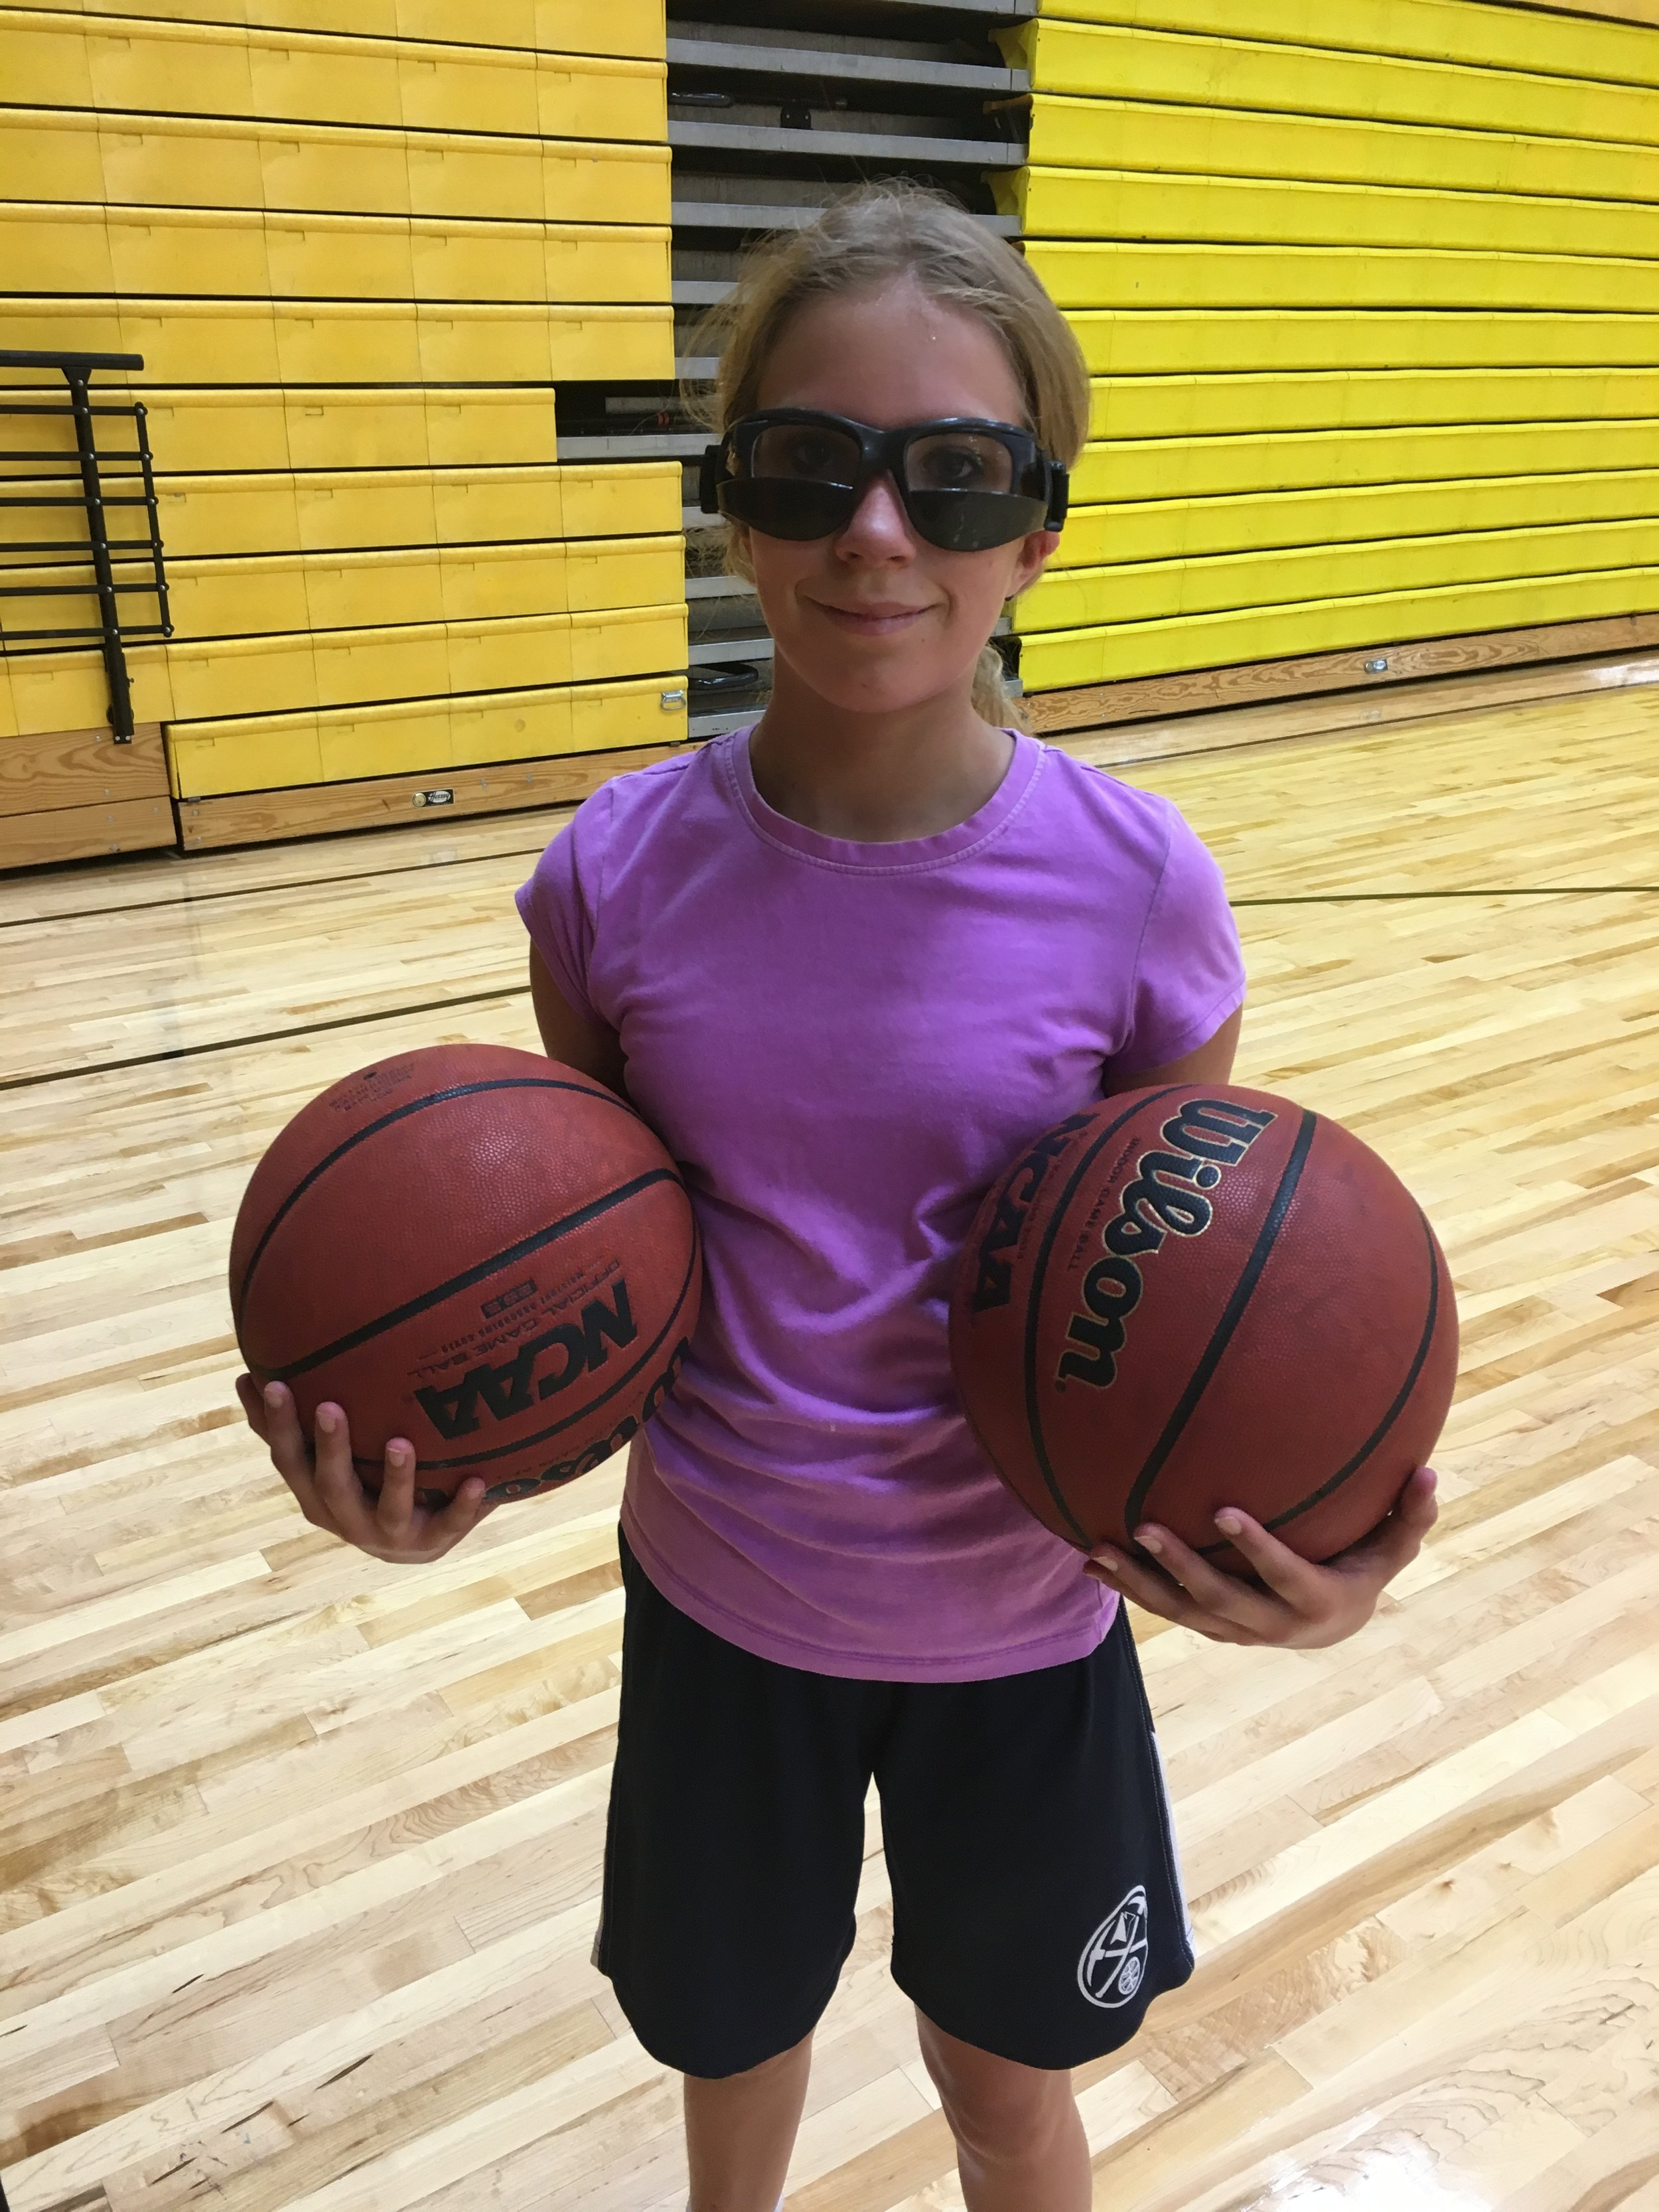 My girl Lily in her ball handling goggles!!!